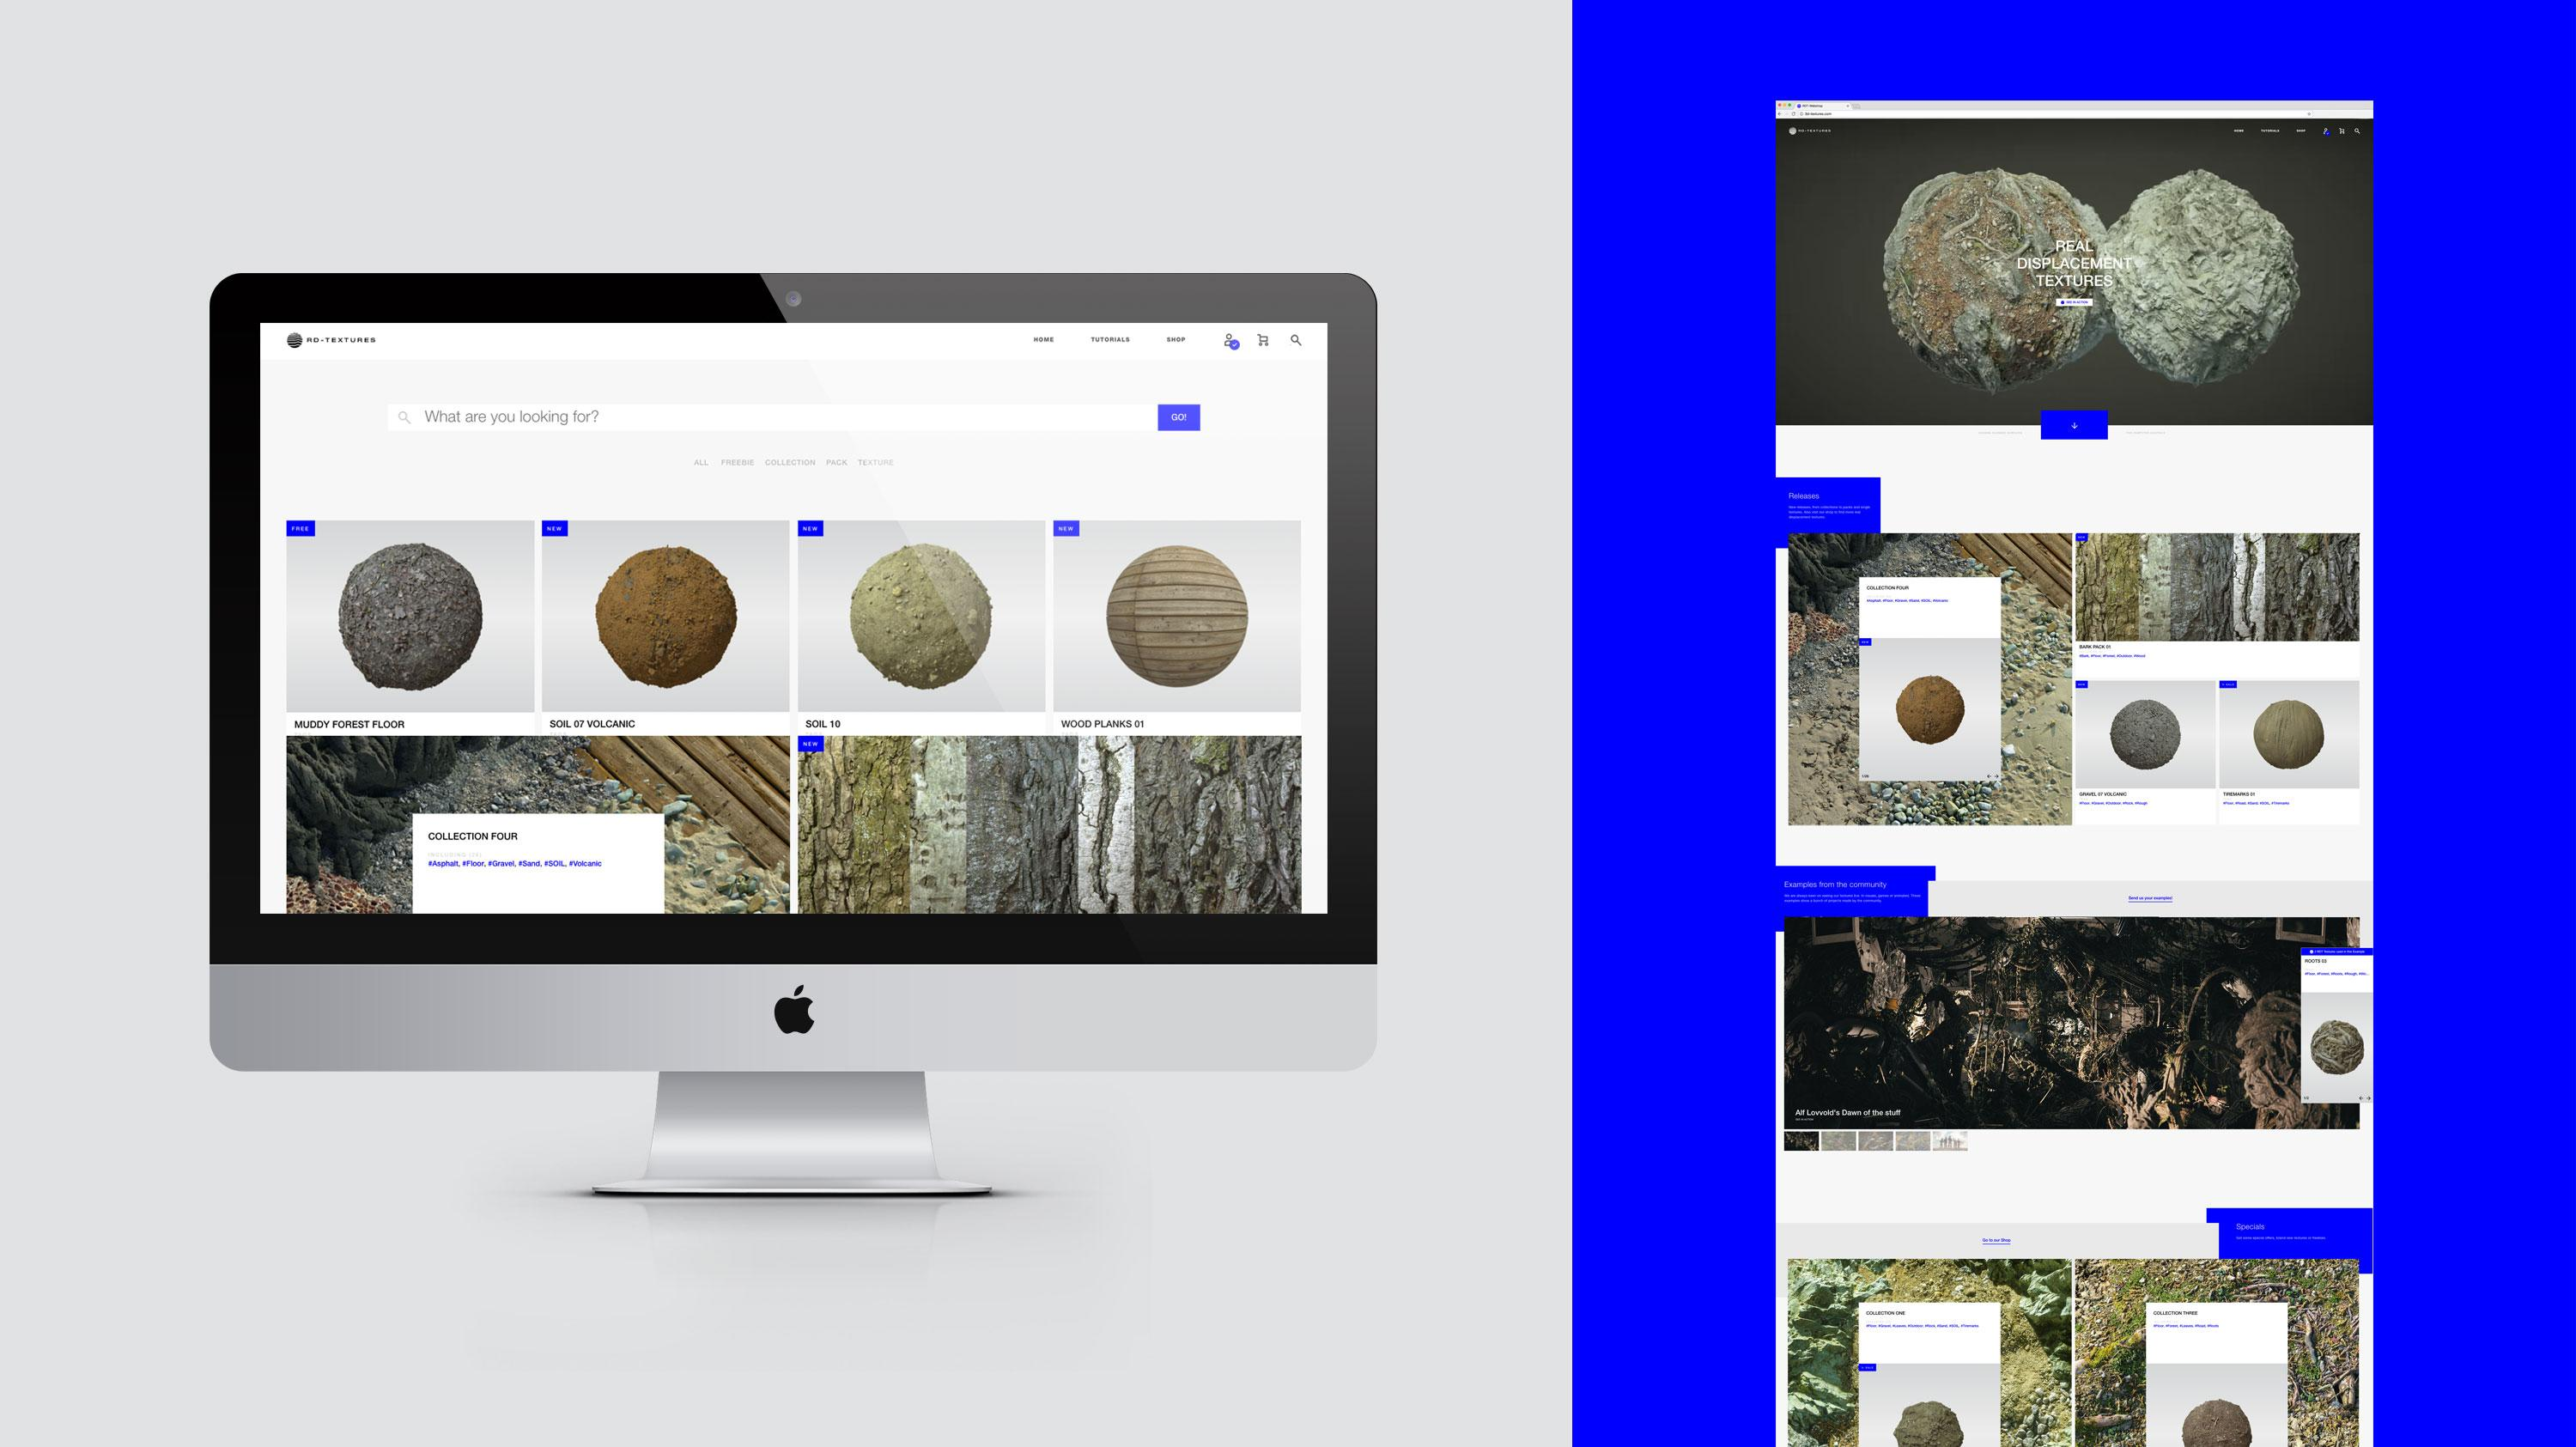 The picture shows design elements of RD-Textures website